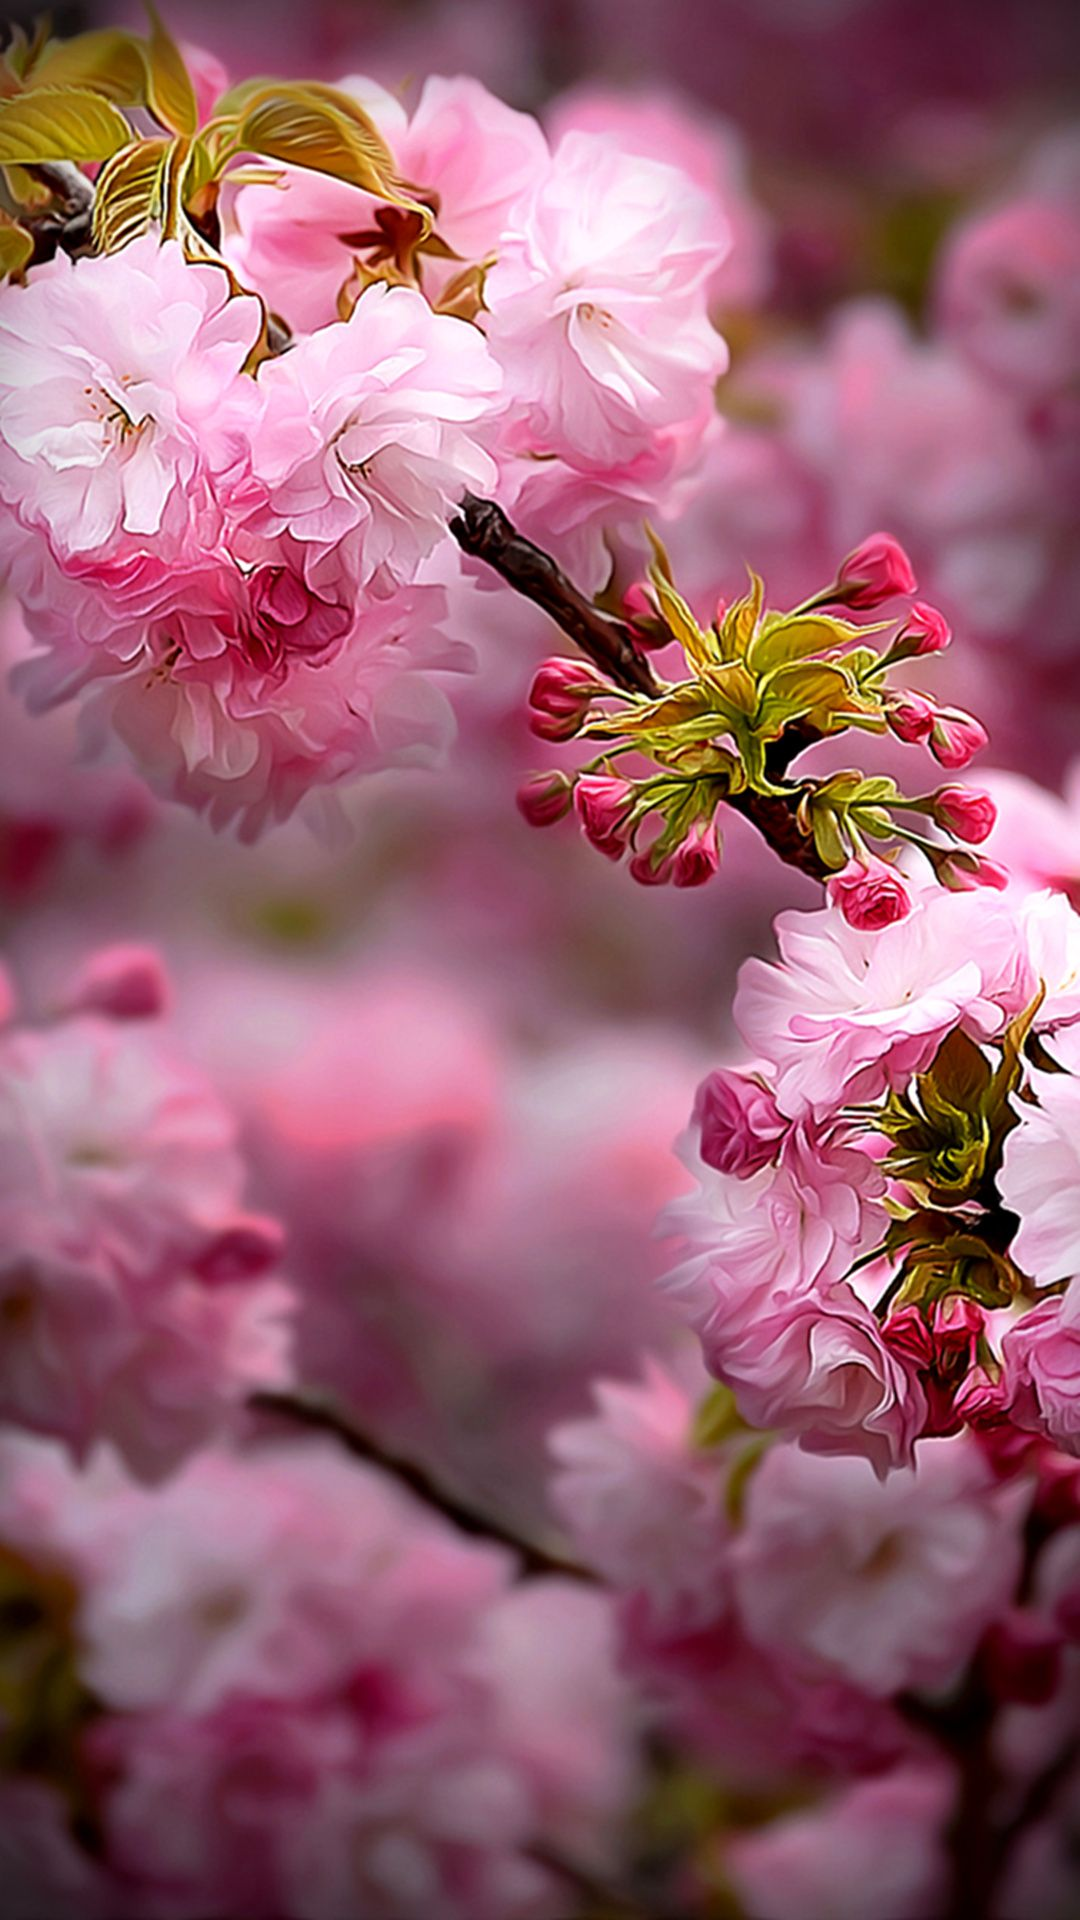 Pin by Vactual Papers on Mobile Wallpapers | Flowers